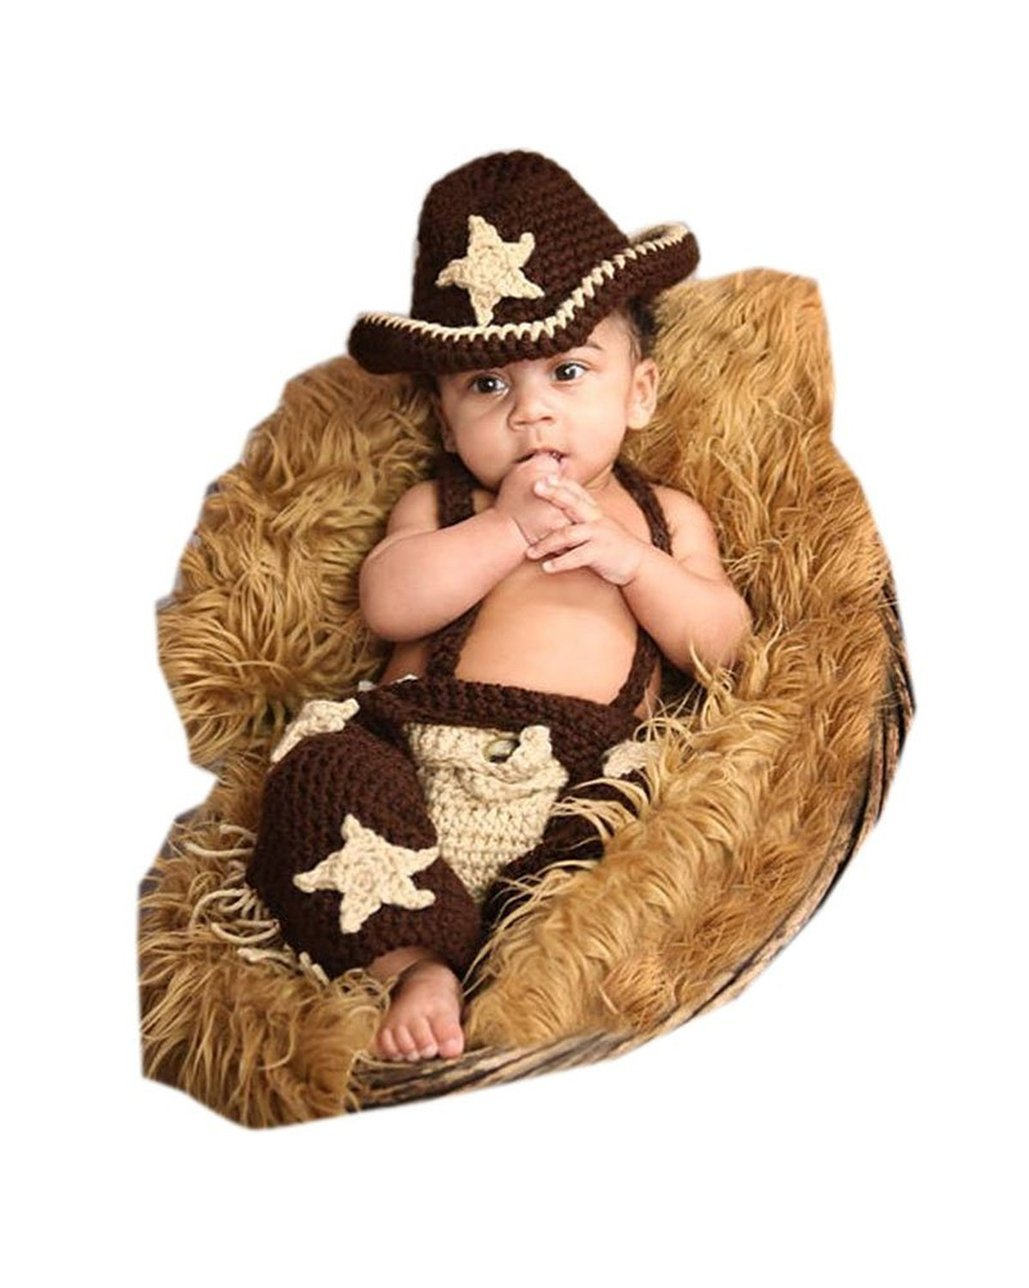 6a144c7a6 Online Cheap wholesale Shinystar Baby Handmade Crochet Knit Cowboy Style  Clothes Photography Prop Costume Set (Style 5) Baby Boys Suppliers